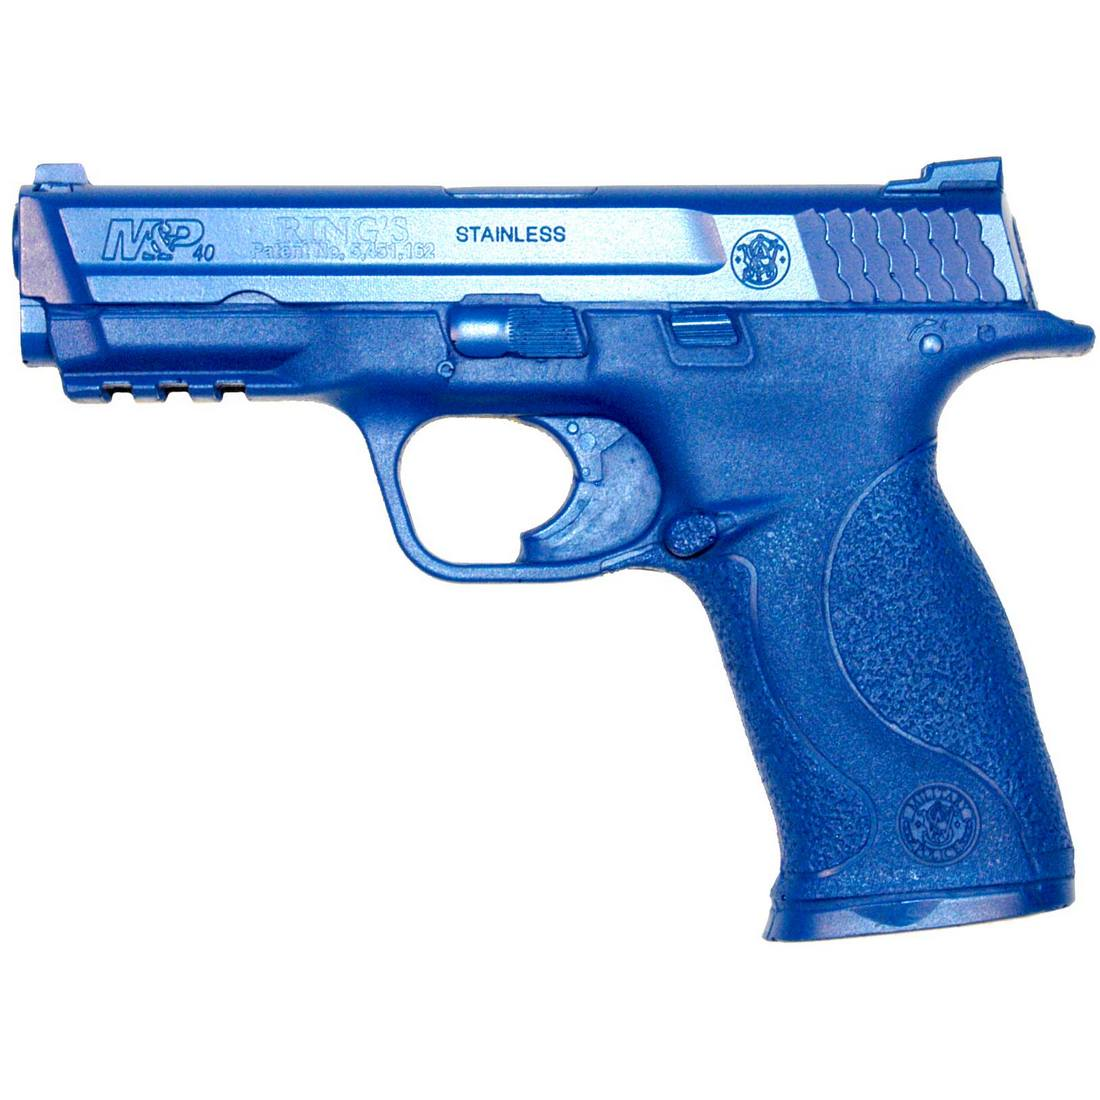 Blueguns FSSWMP40SB S&W M&P 40 4.25